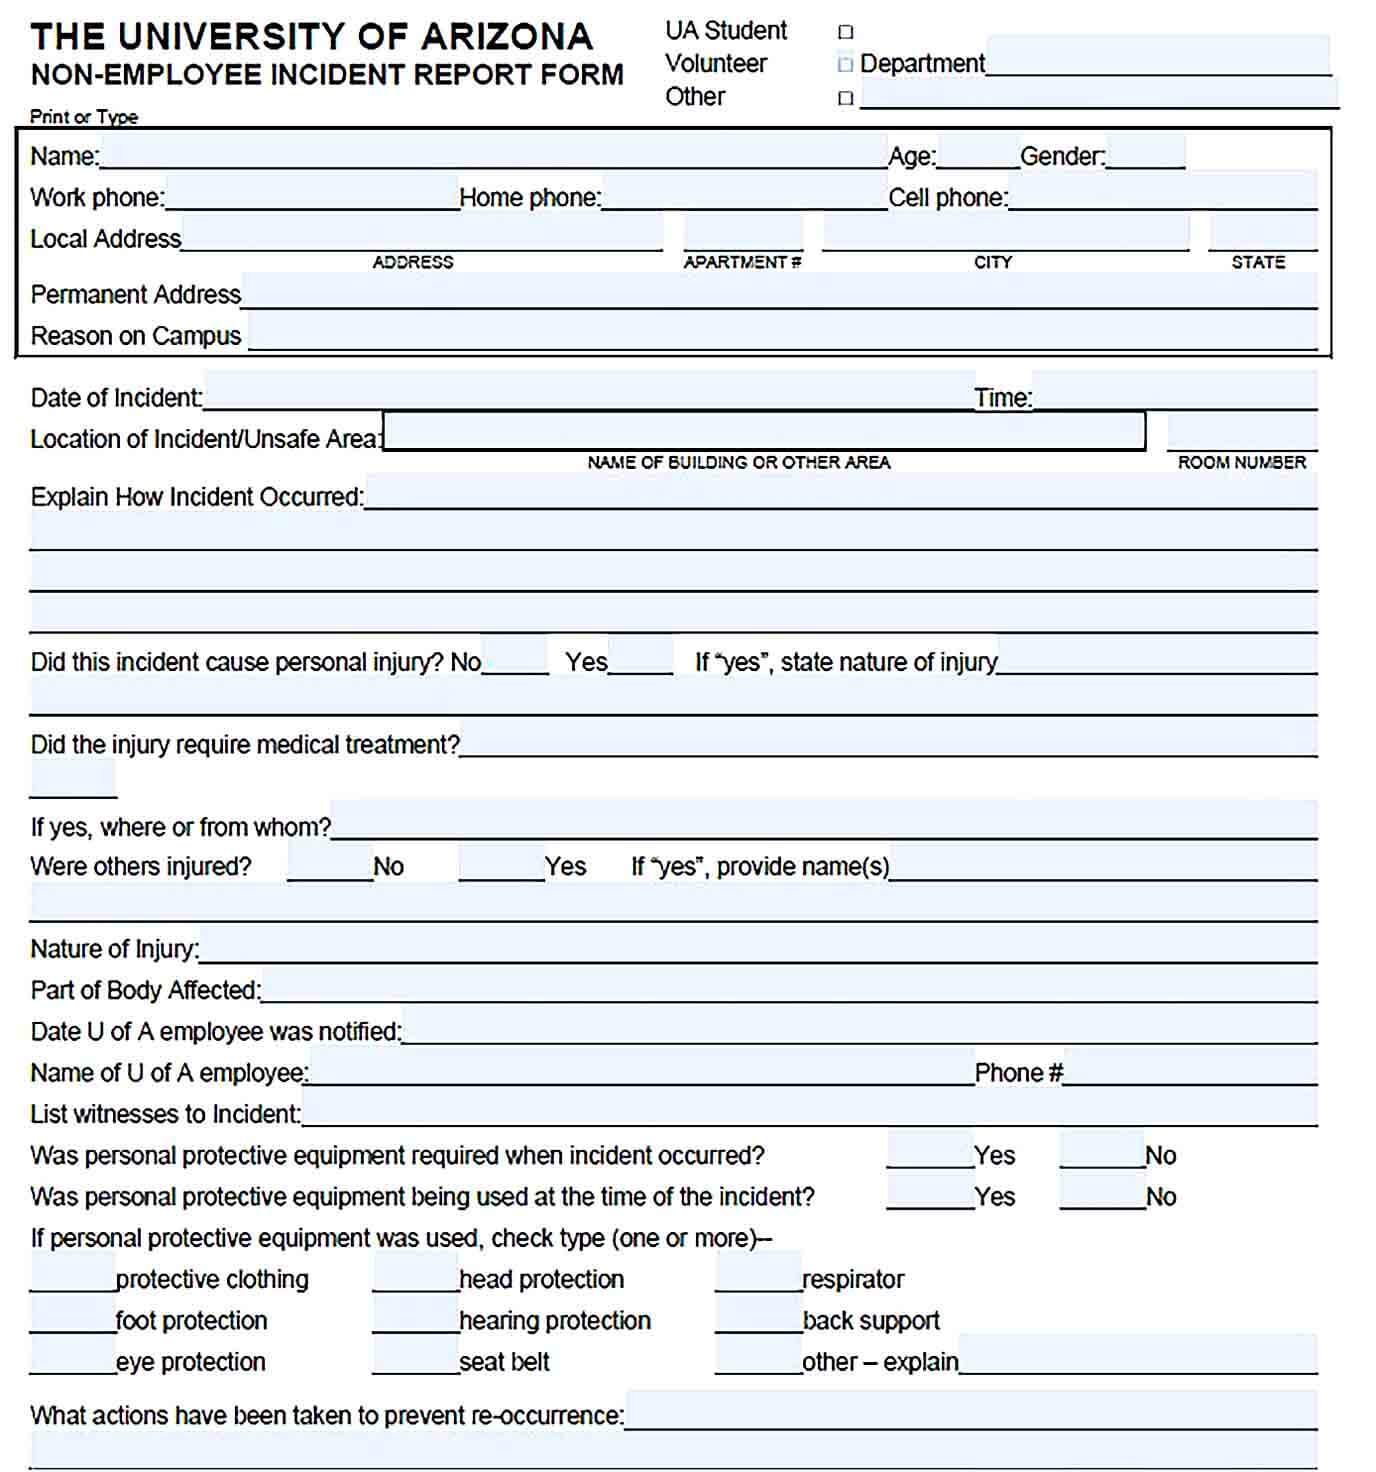 Sample Non Employee Incident Report Form